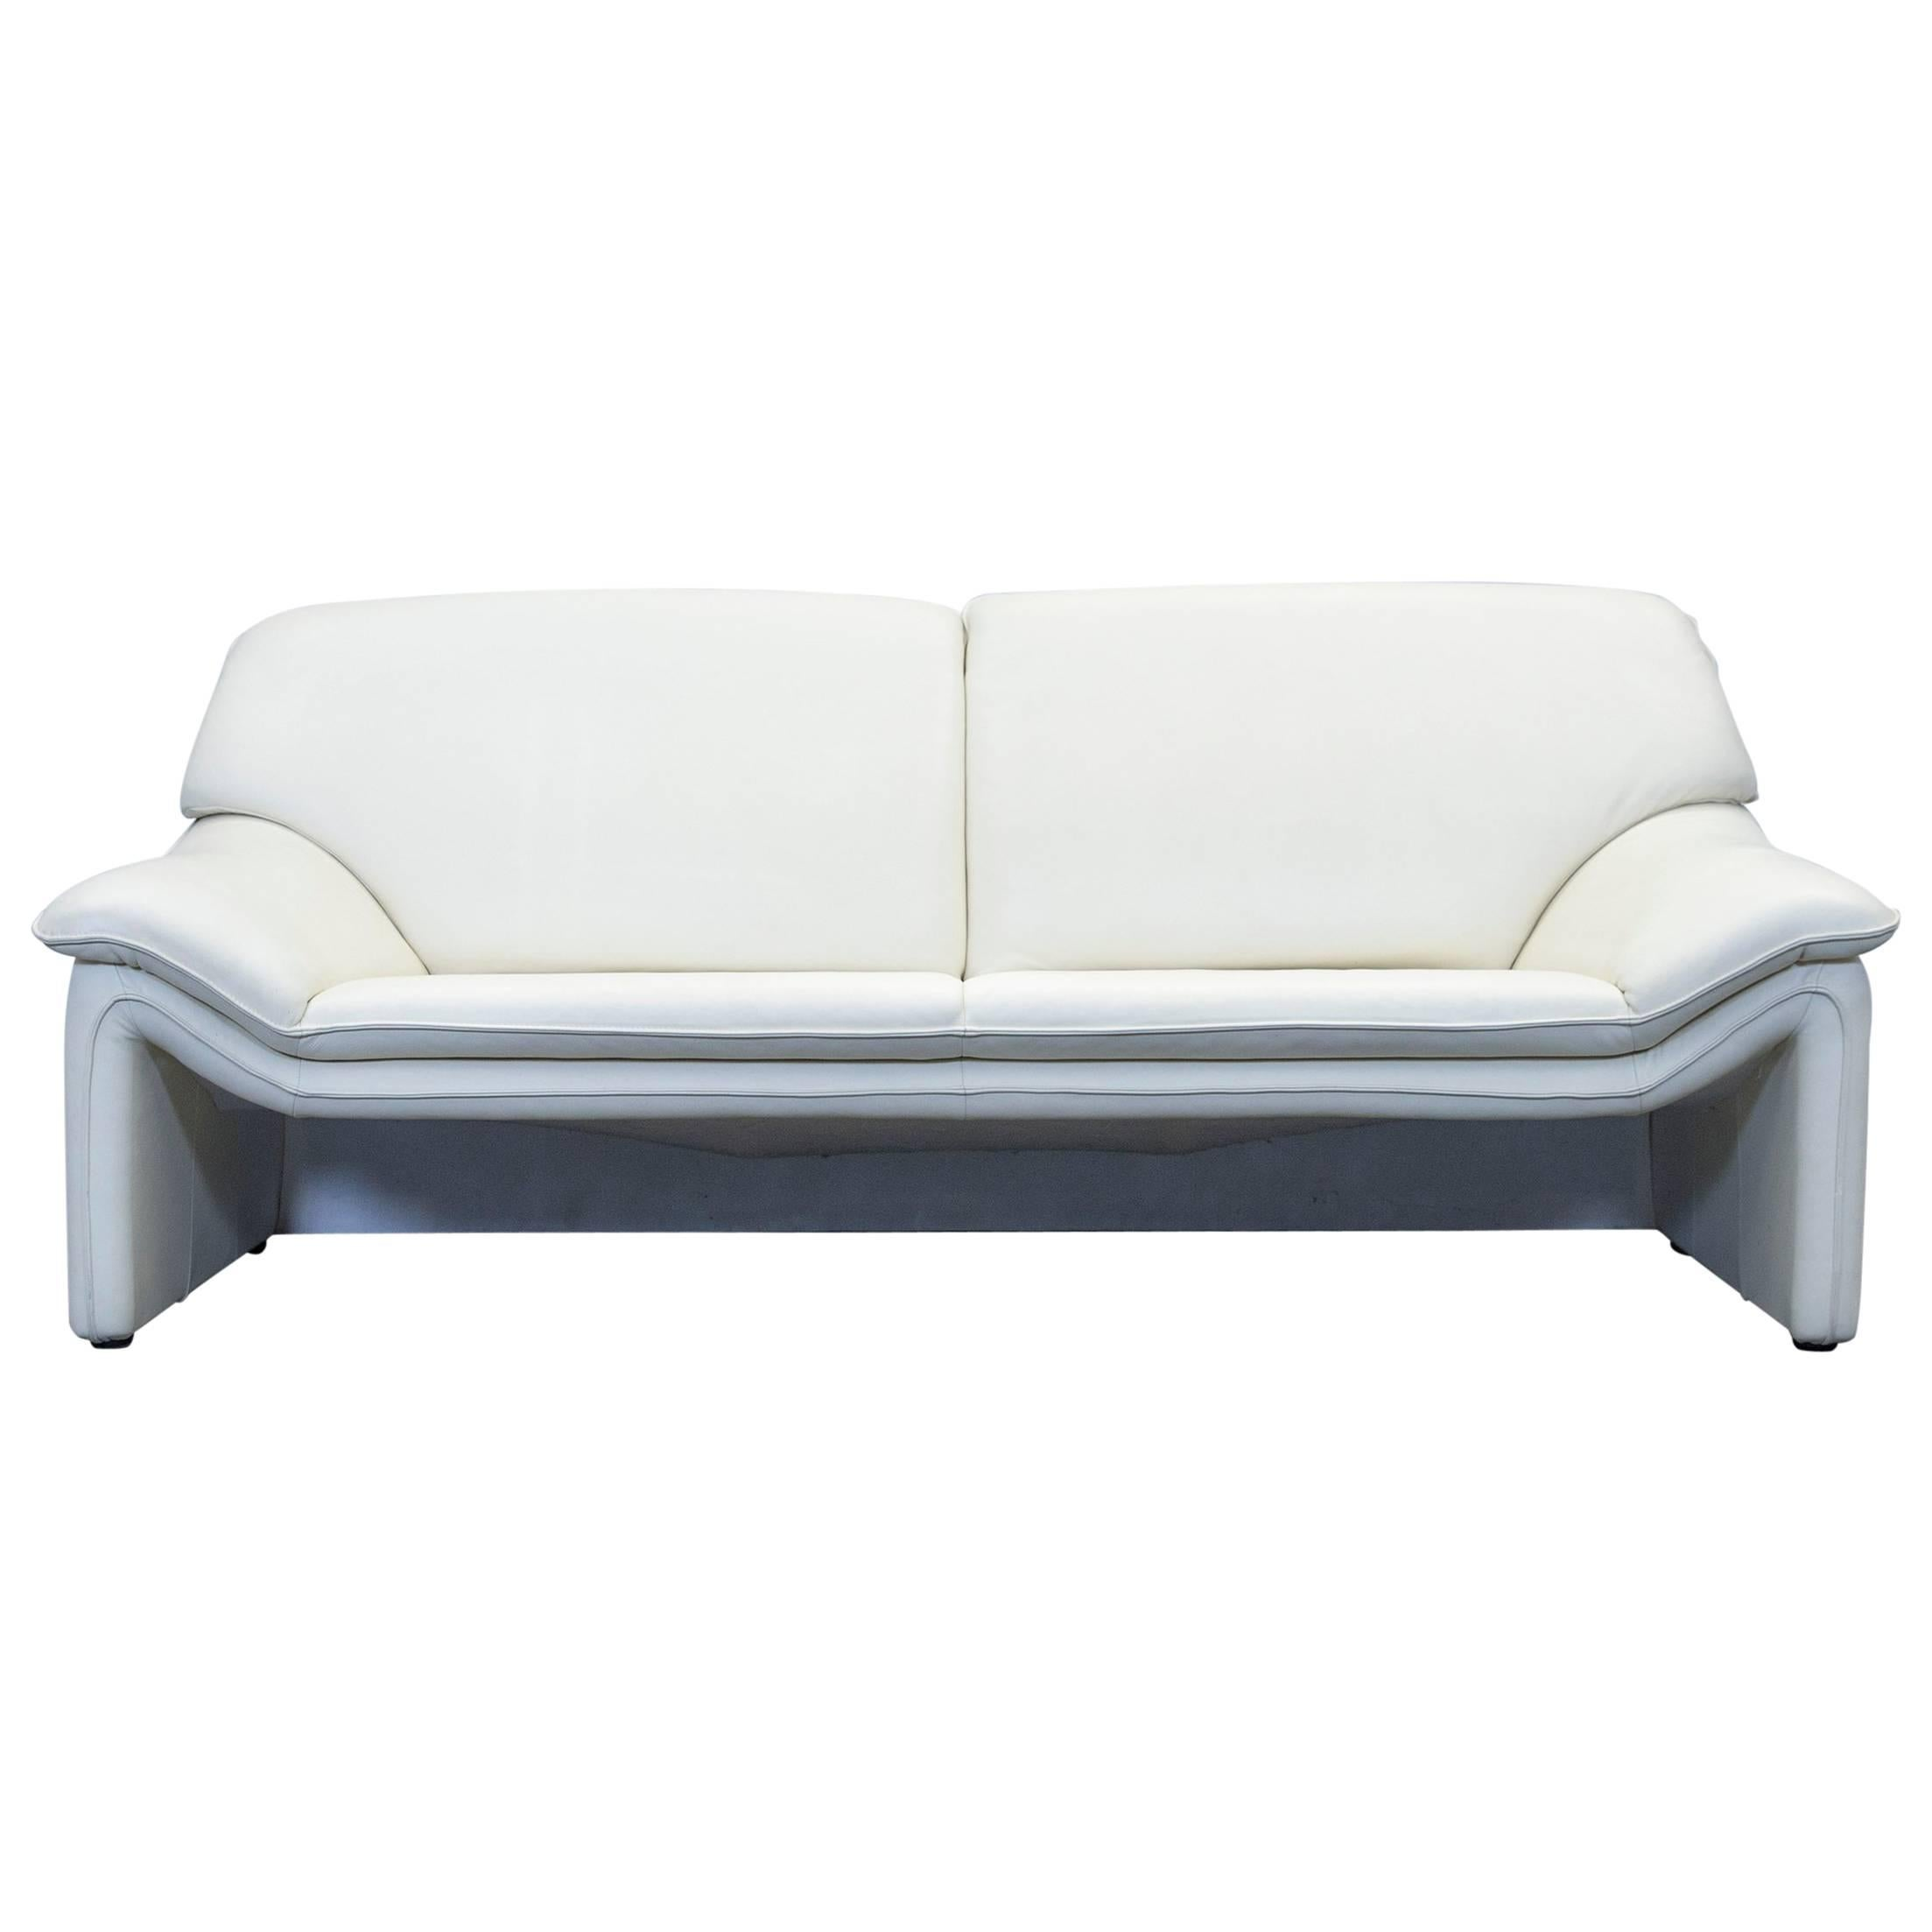 Laauser Atlanta Designer Sofa Leather Crème Two Seat Couch Modern For Sale